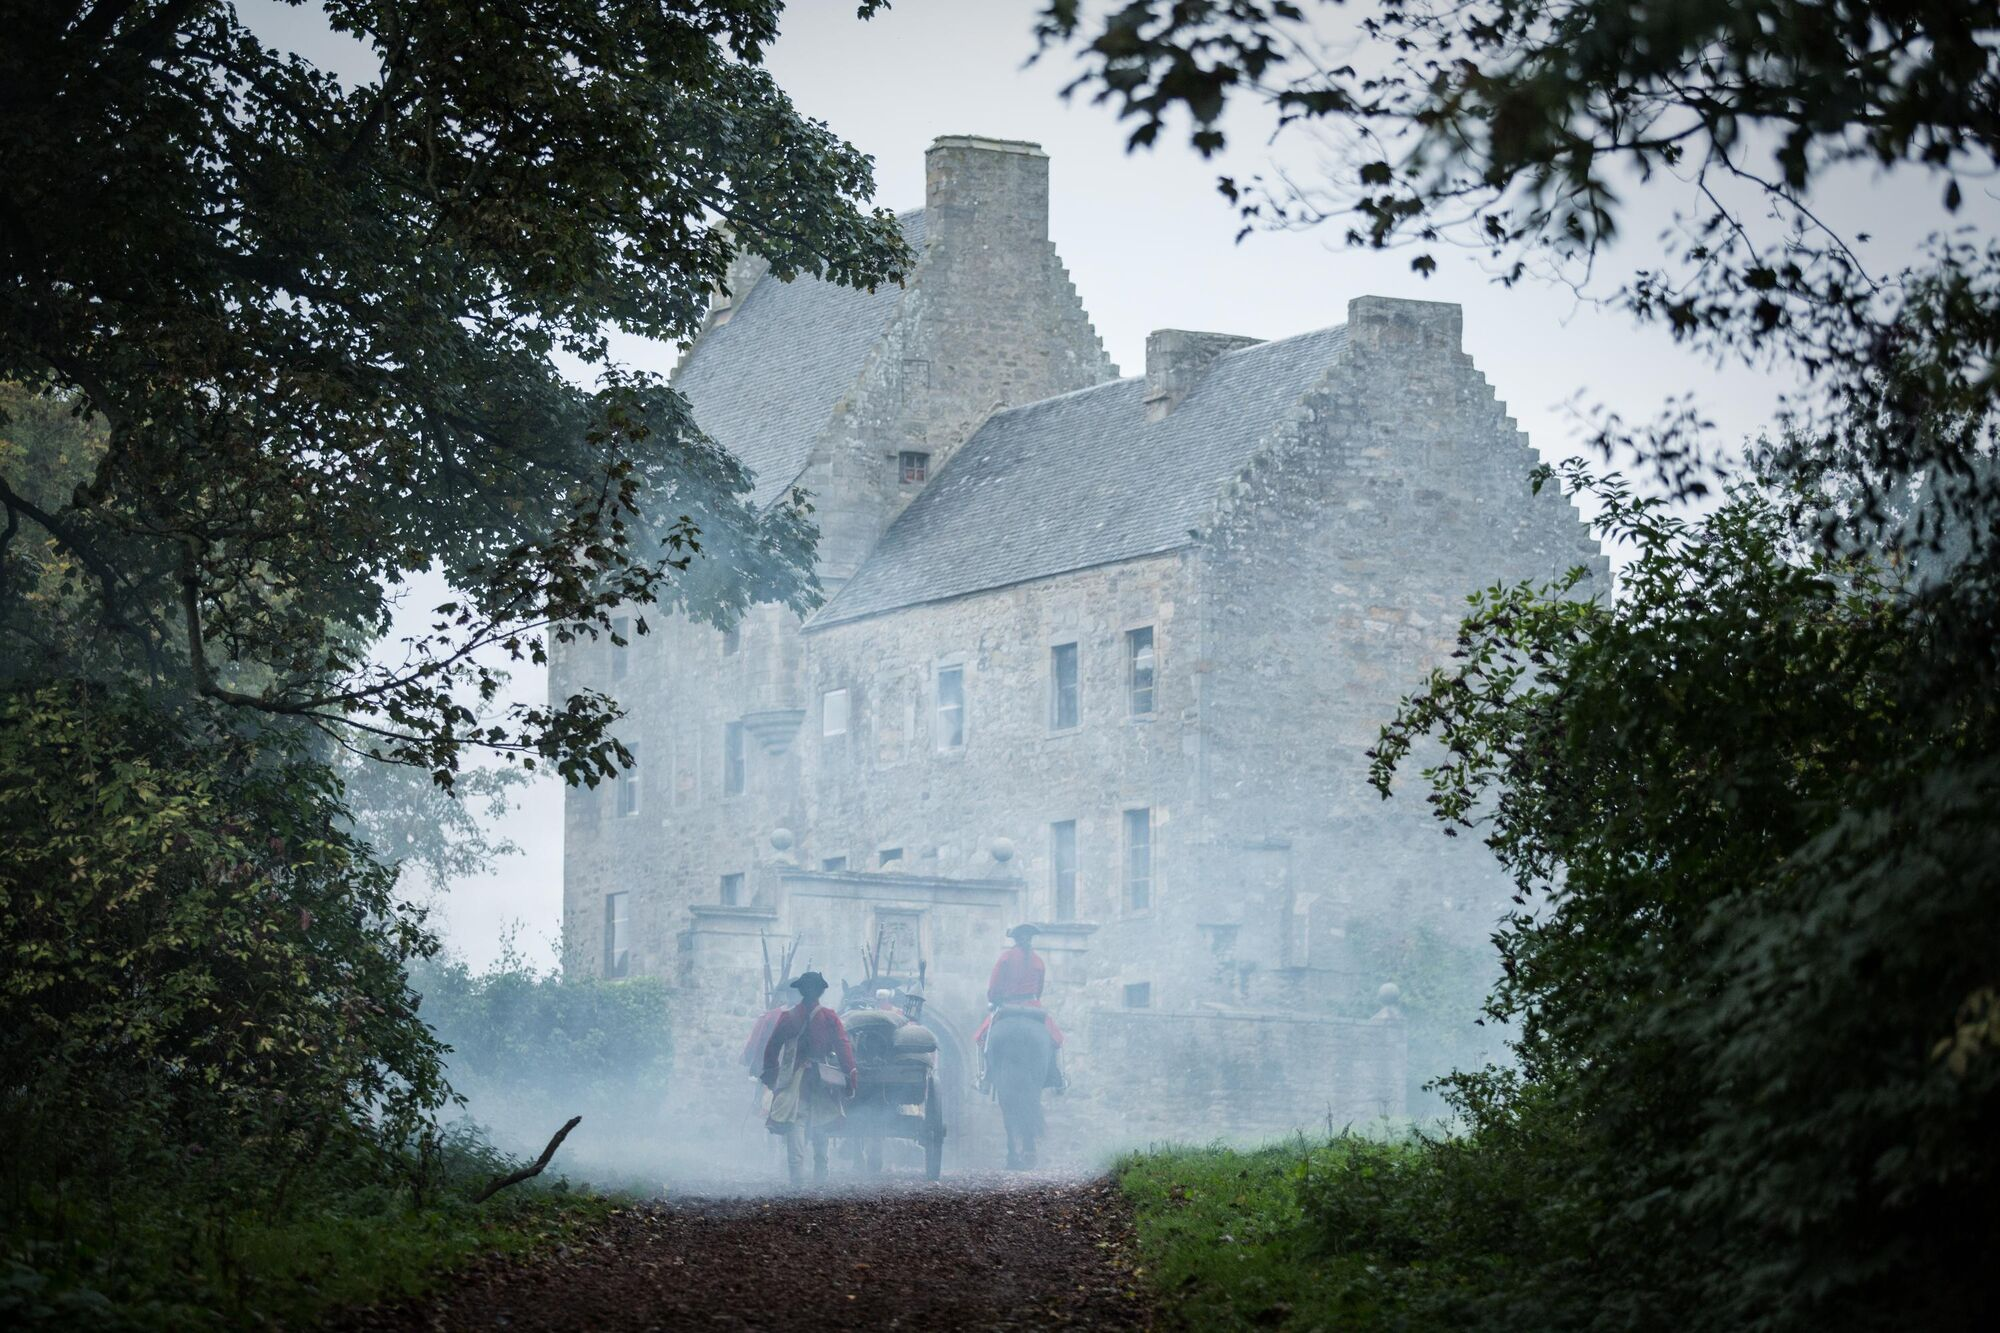 Are you looking for Lallybroch? - Scotts Castle Holidays